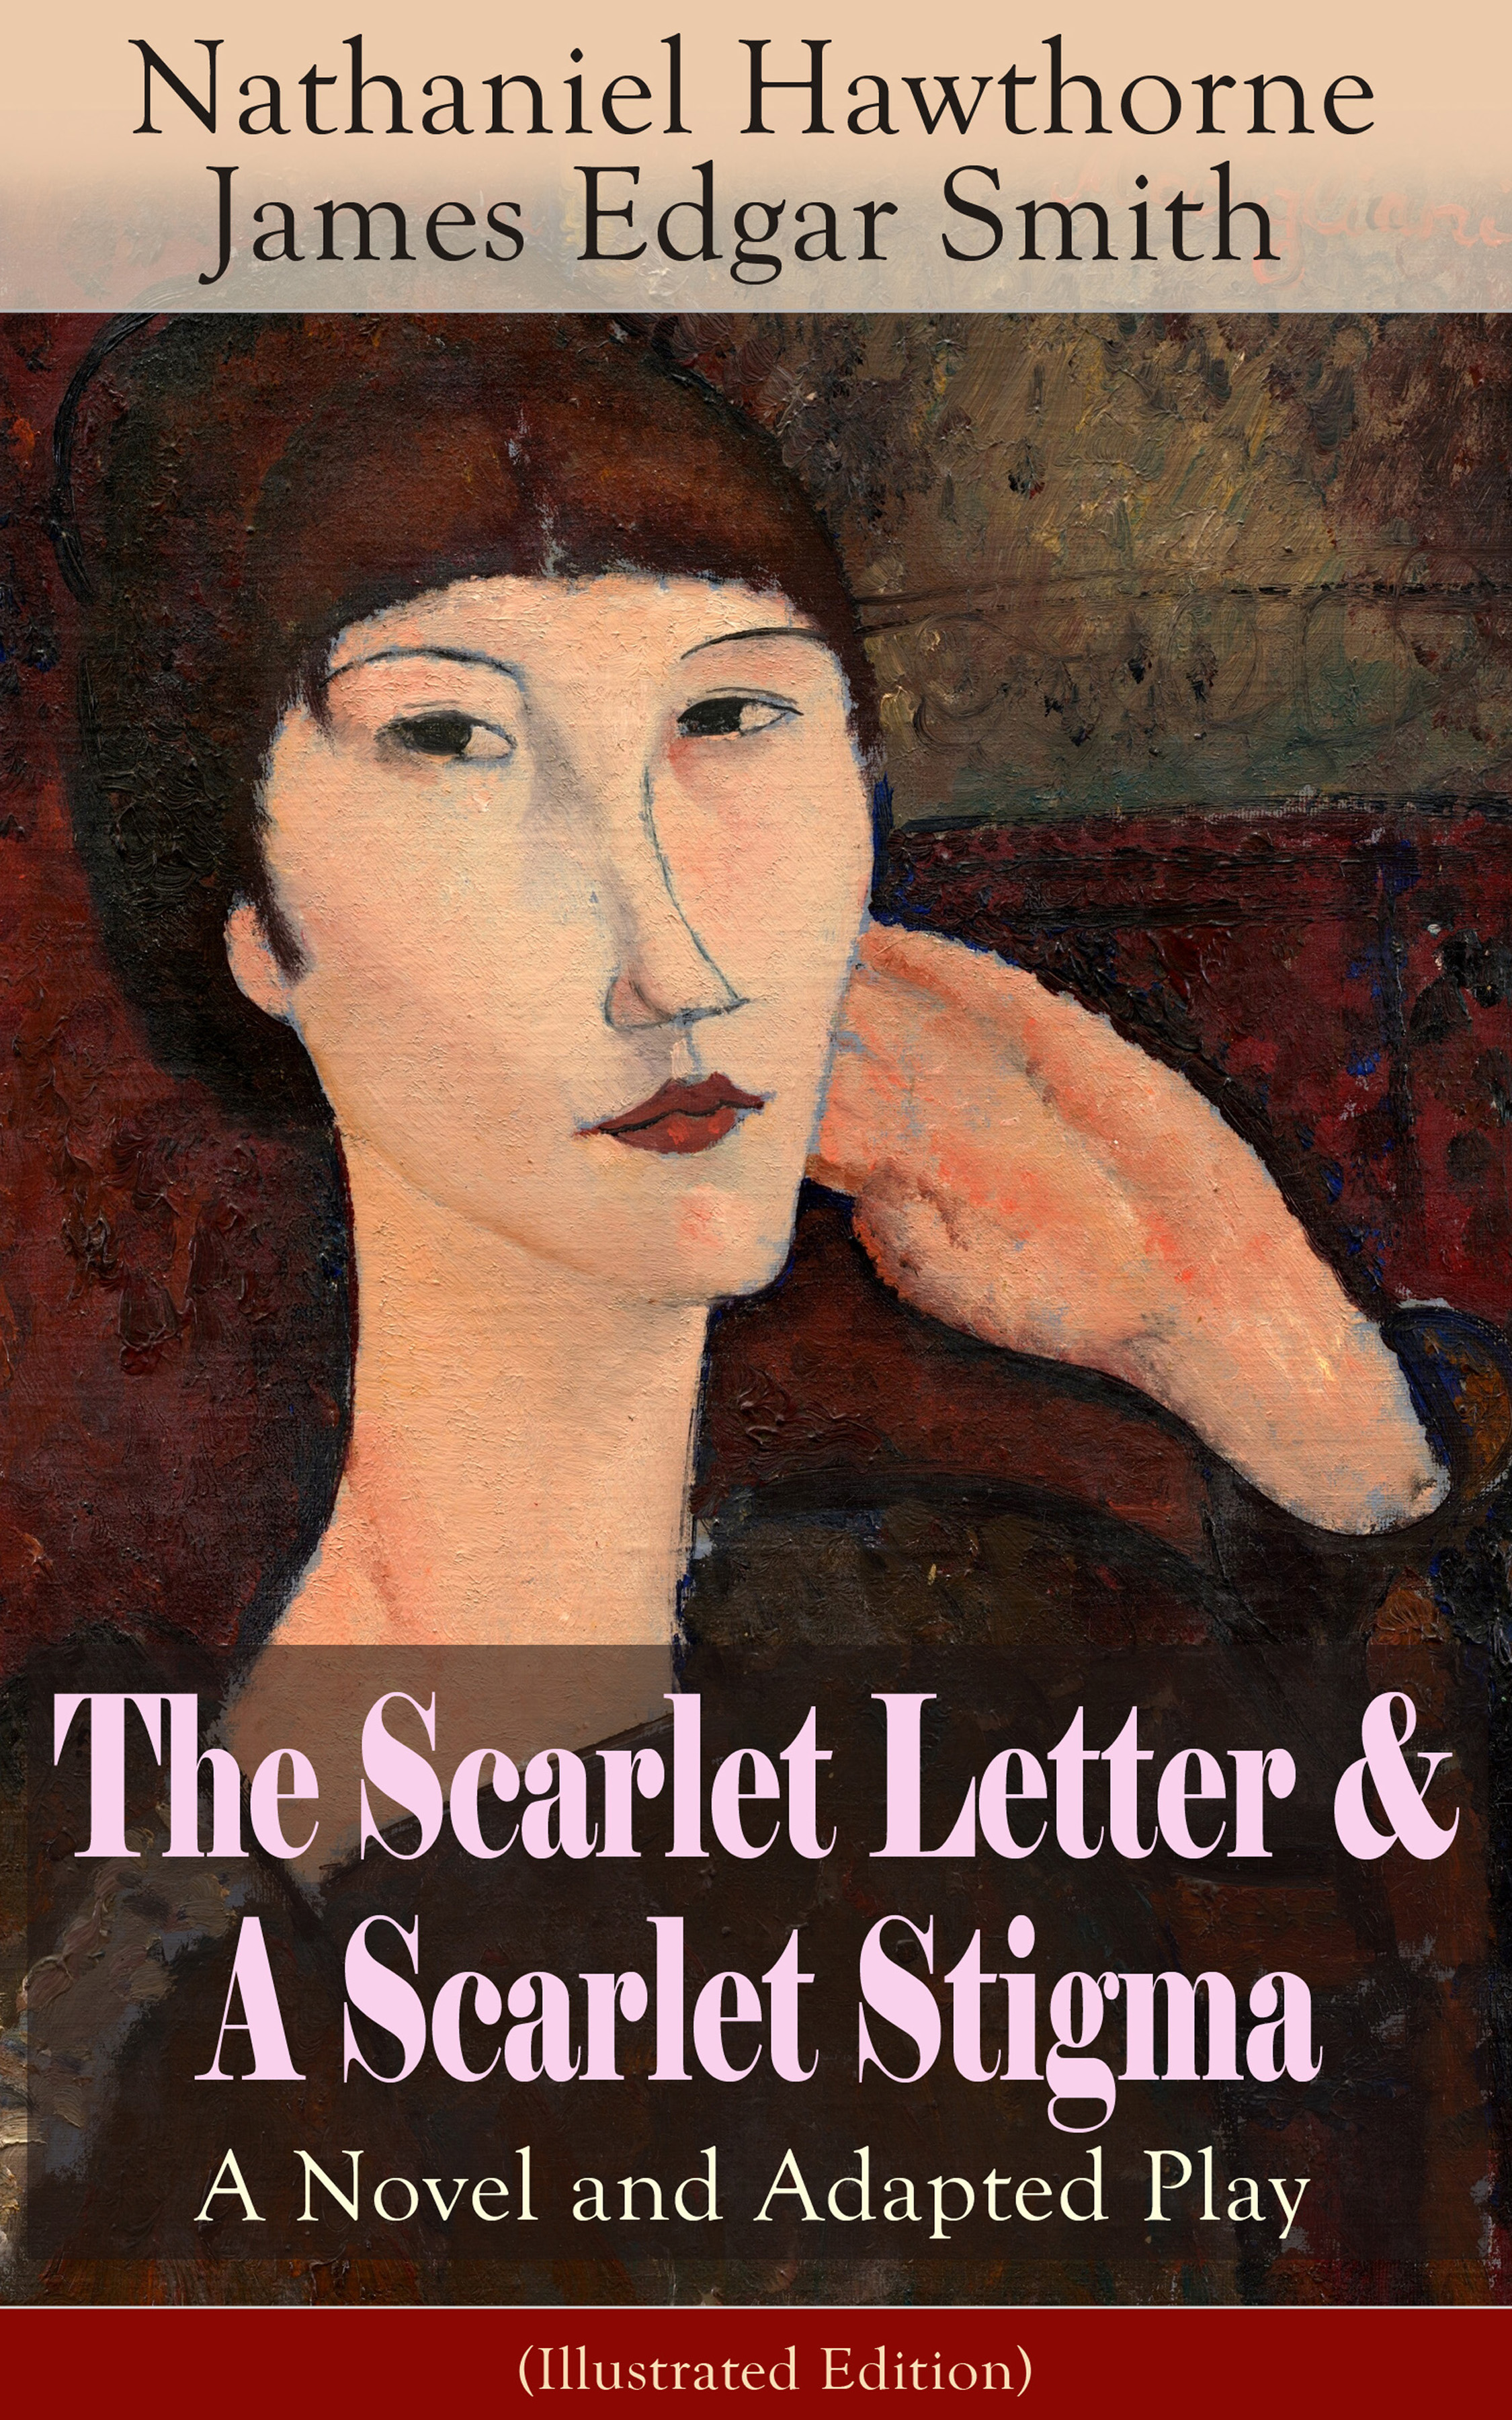 James Edgar Smith The Scarlet Letter & A Scarlet Stigma: A Novel and Adapted Play (Illustrated Edition) ideal the novel and the play